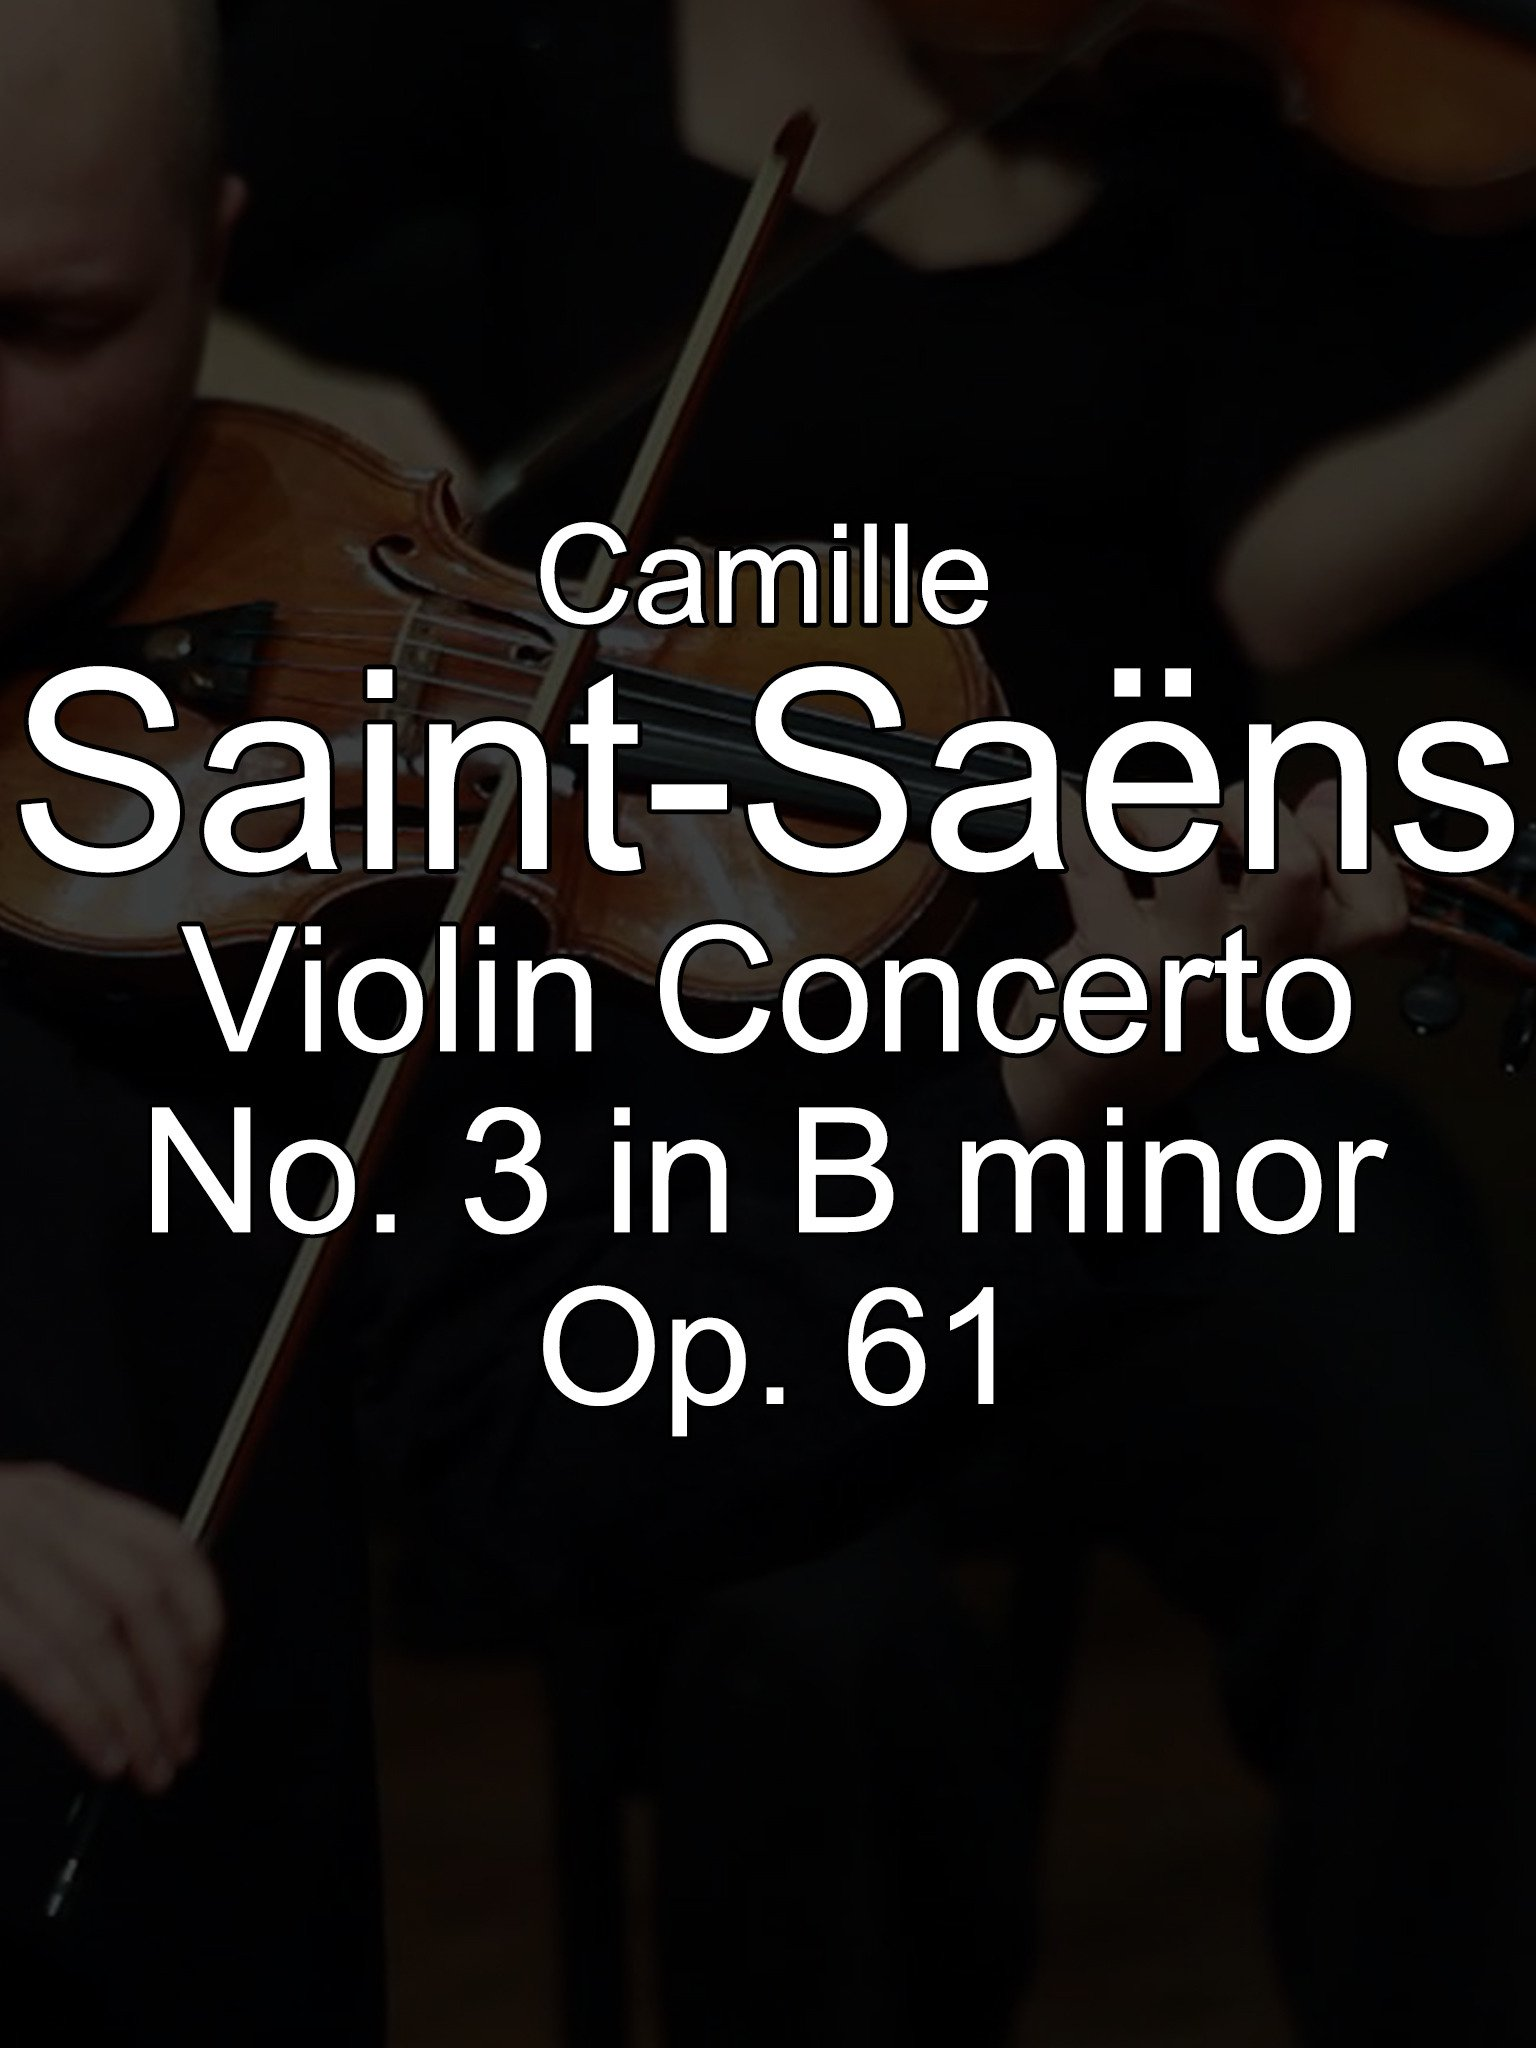 Camille Saint-Saëns Violin Concerto No. 3 in B minor, Op. 61